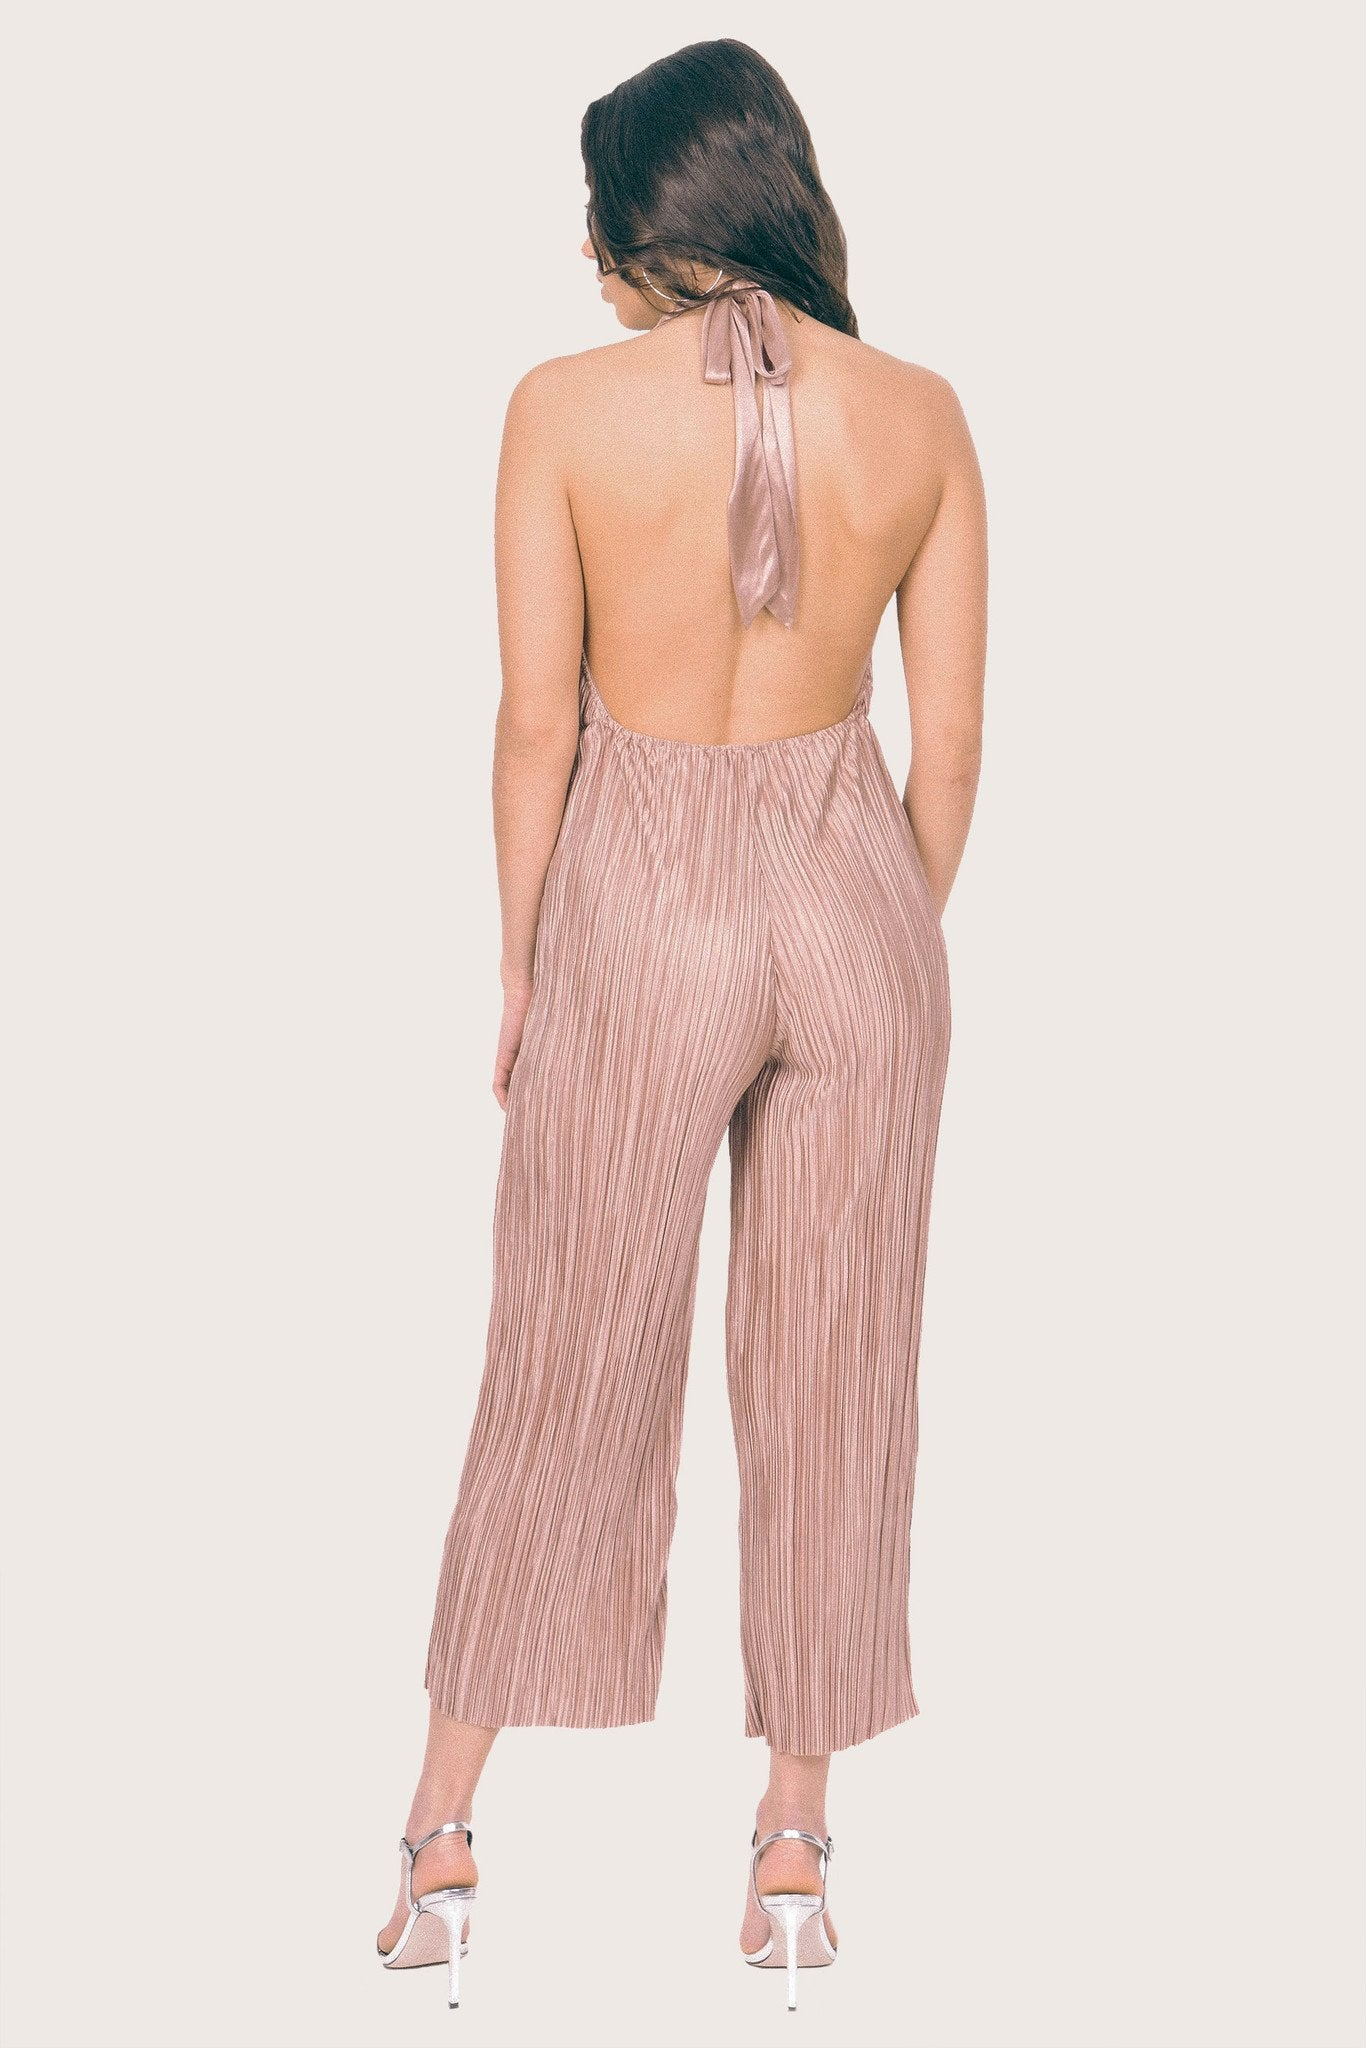 Shop Lola May Jumpsuit Lola May Rose Gold Plisse Jumpsuit Second Thread